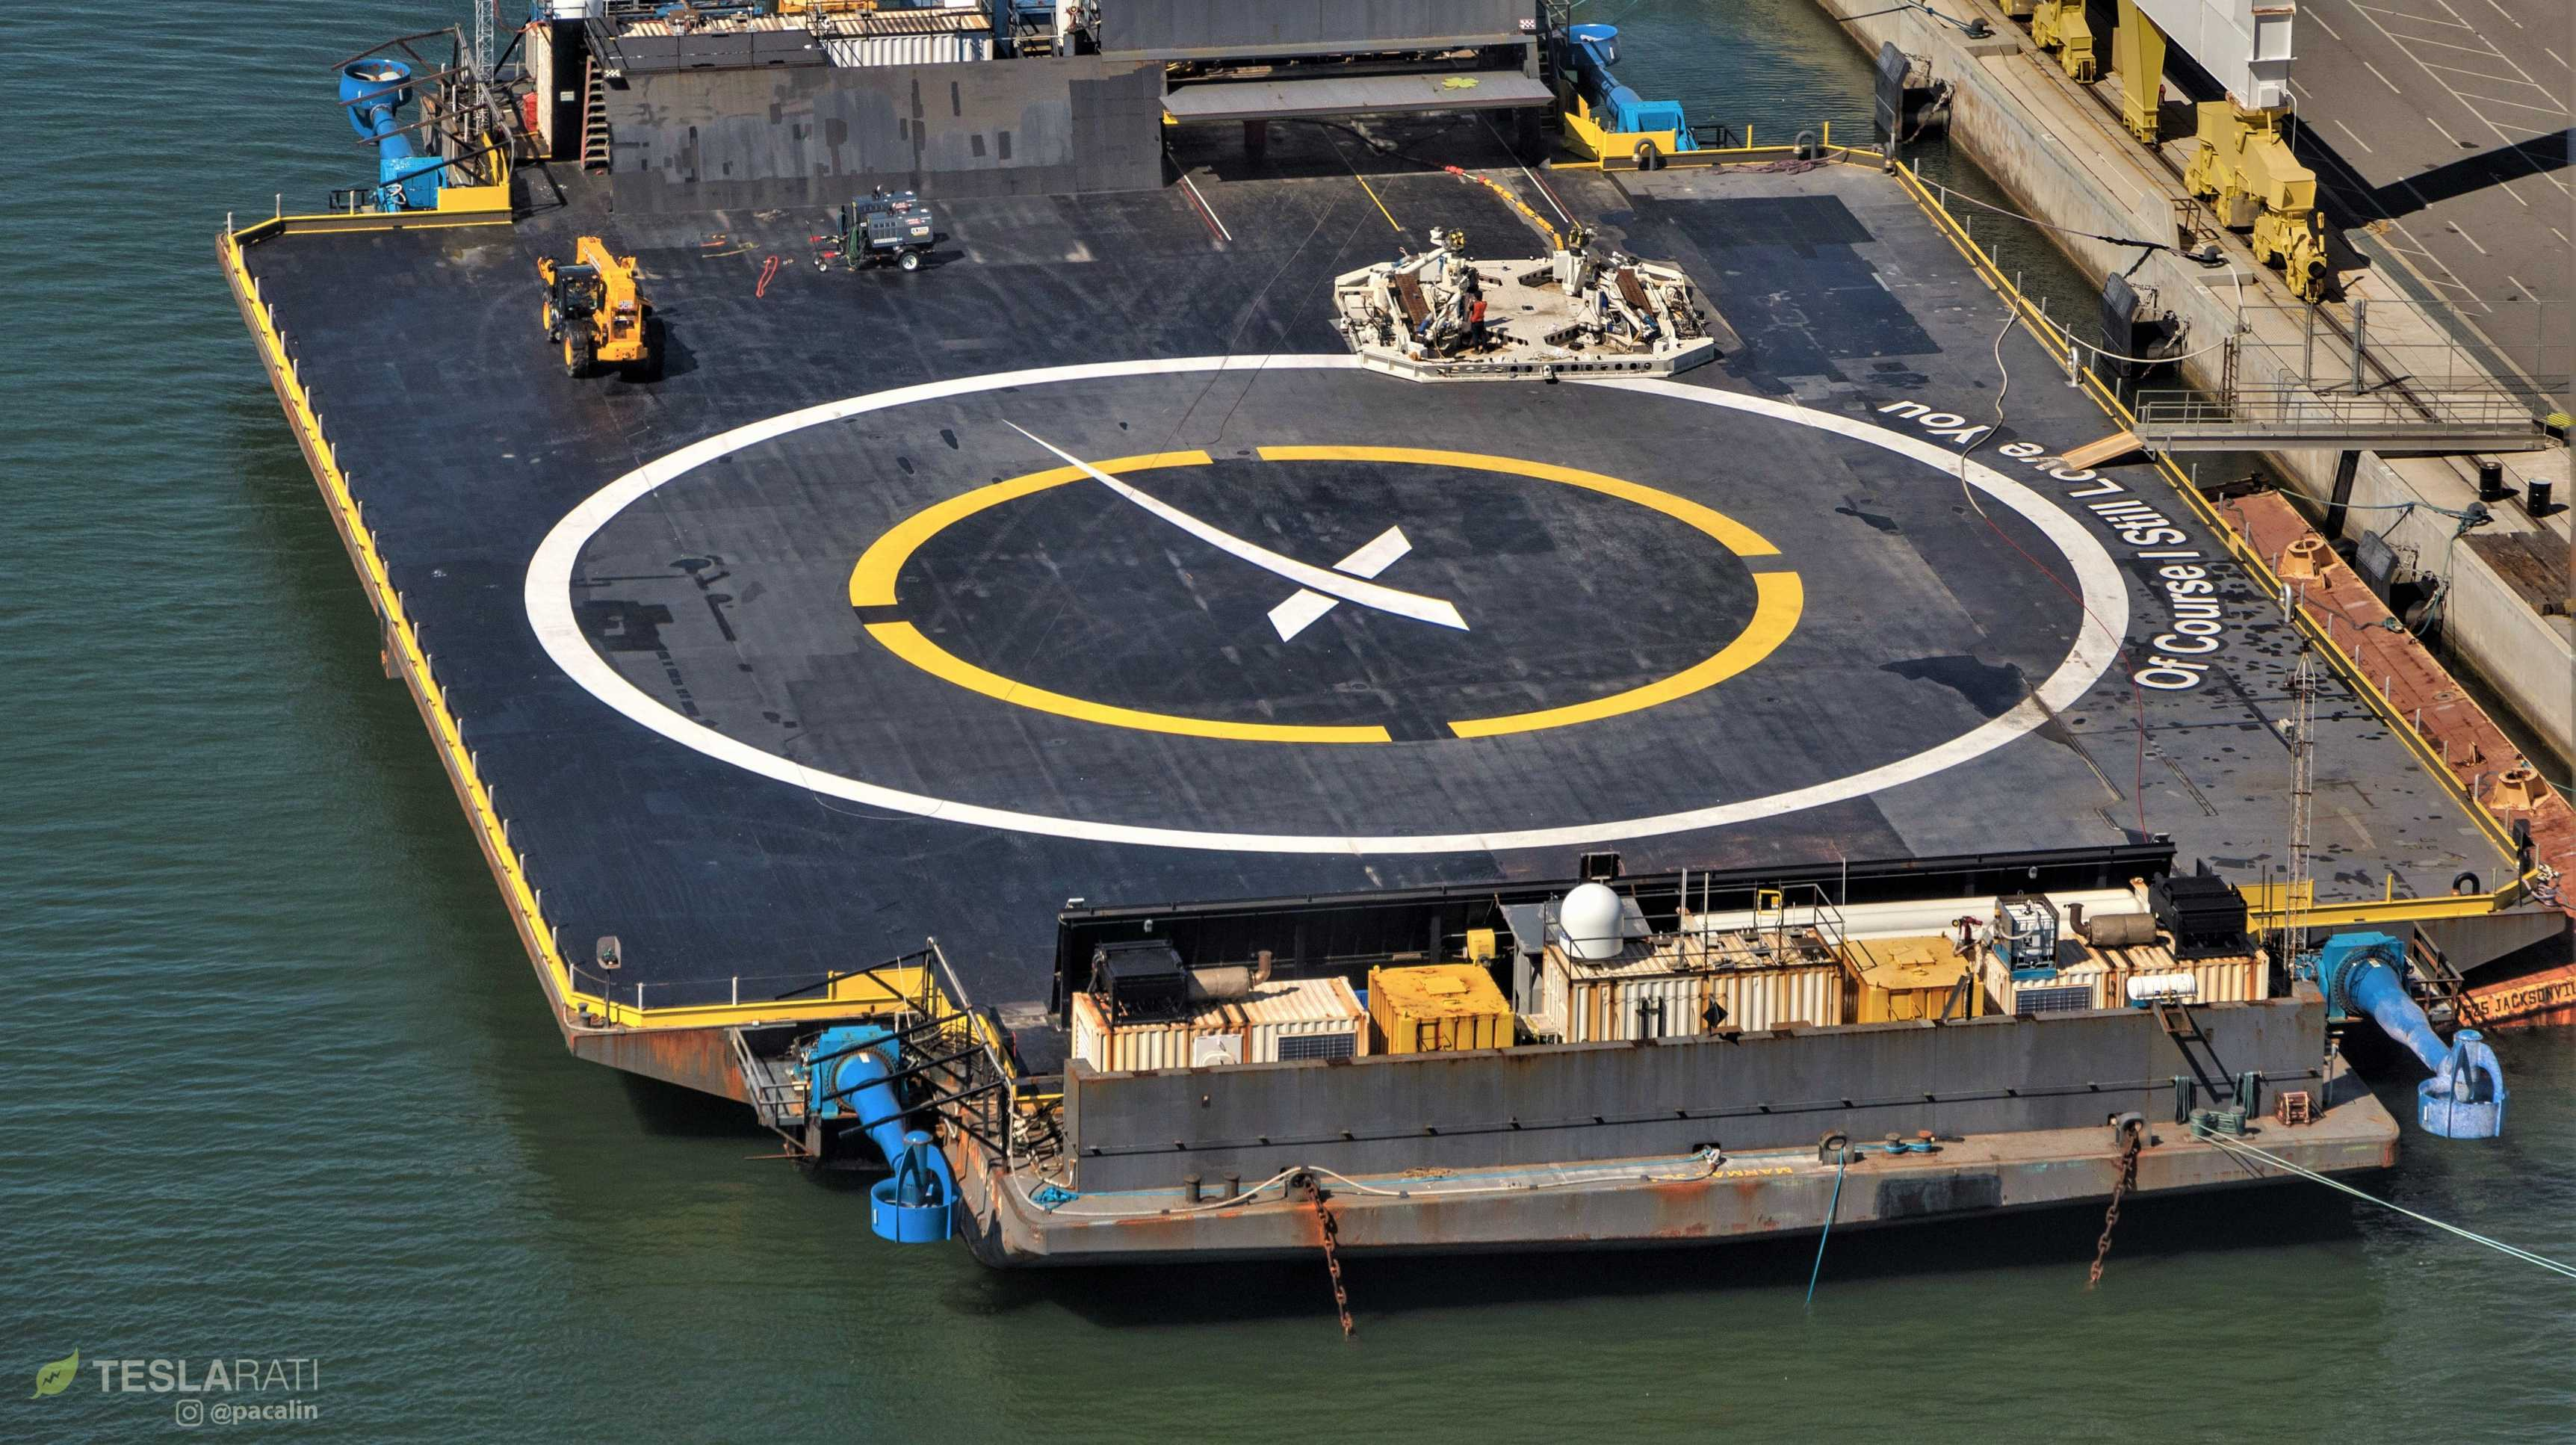 SpaceX's Falcon 9 recovery robot prepares for imminent